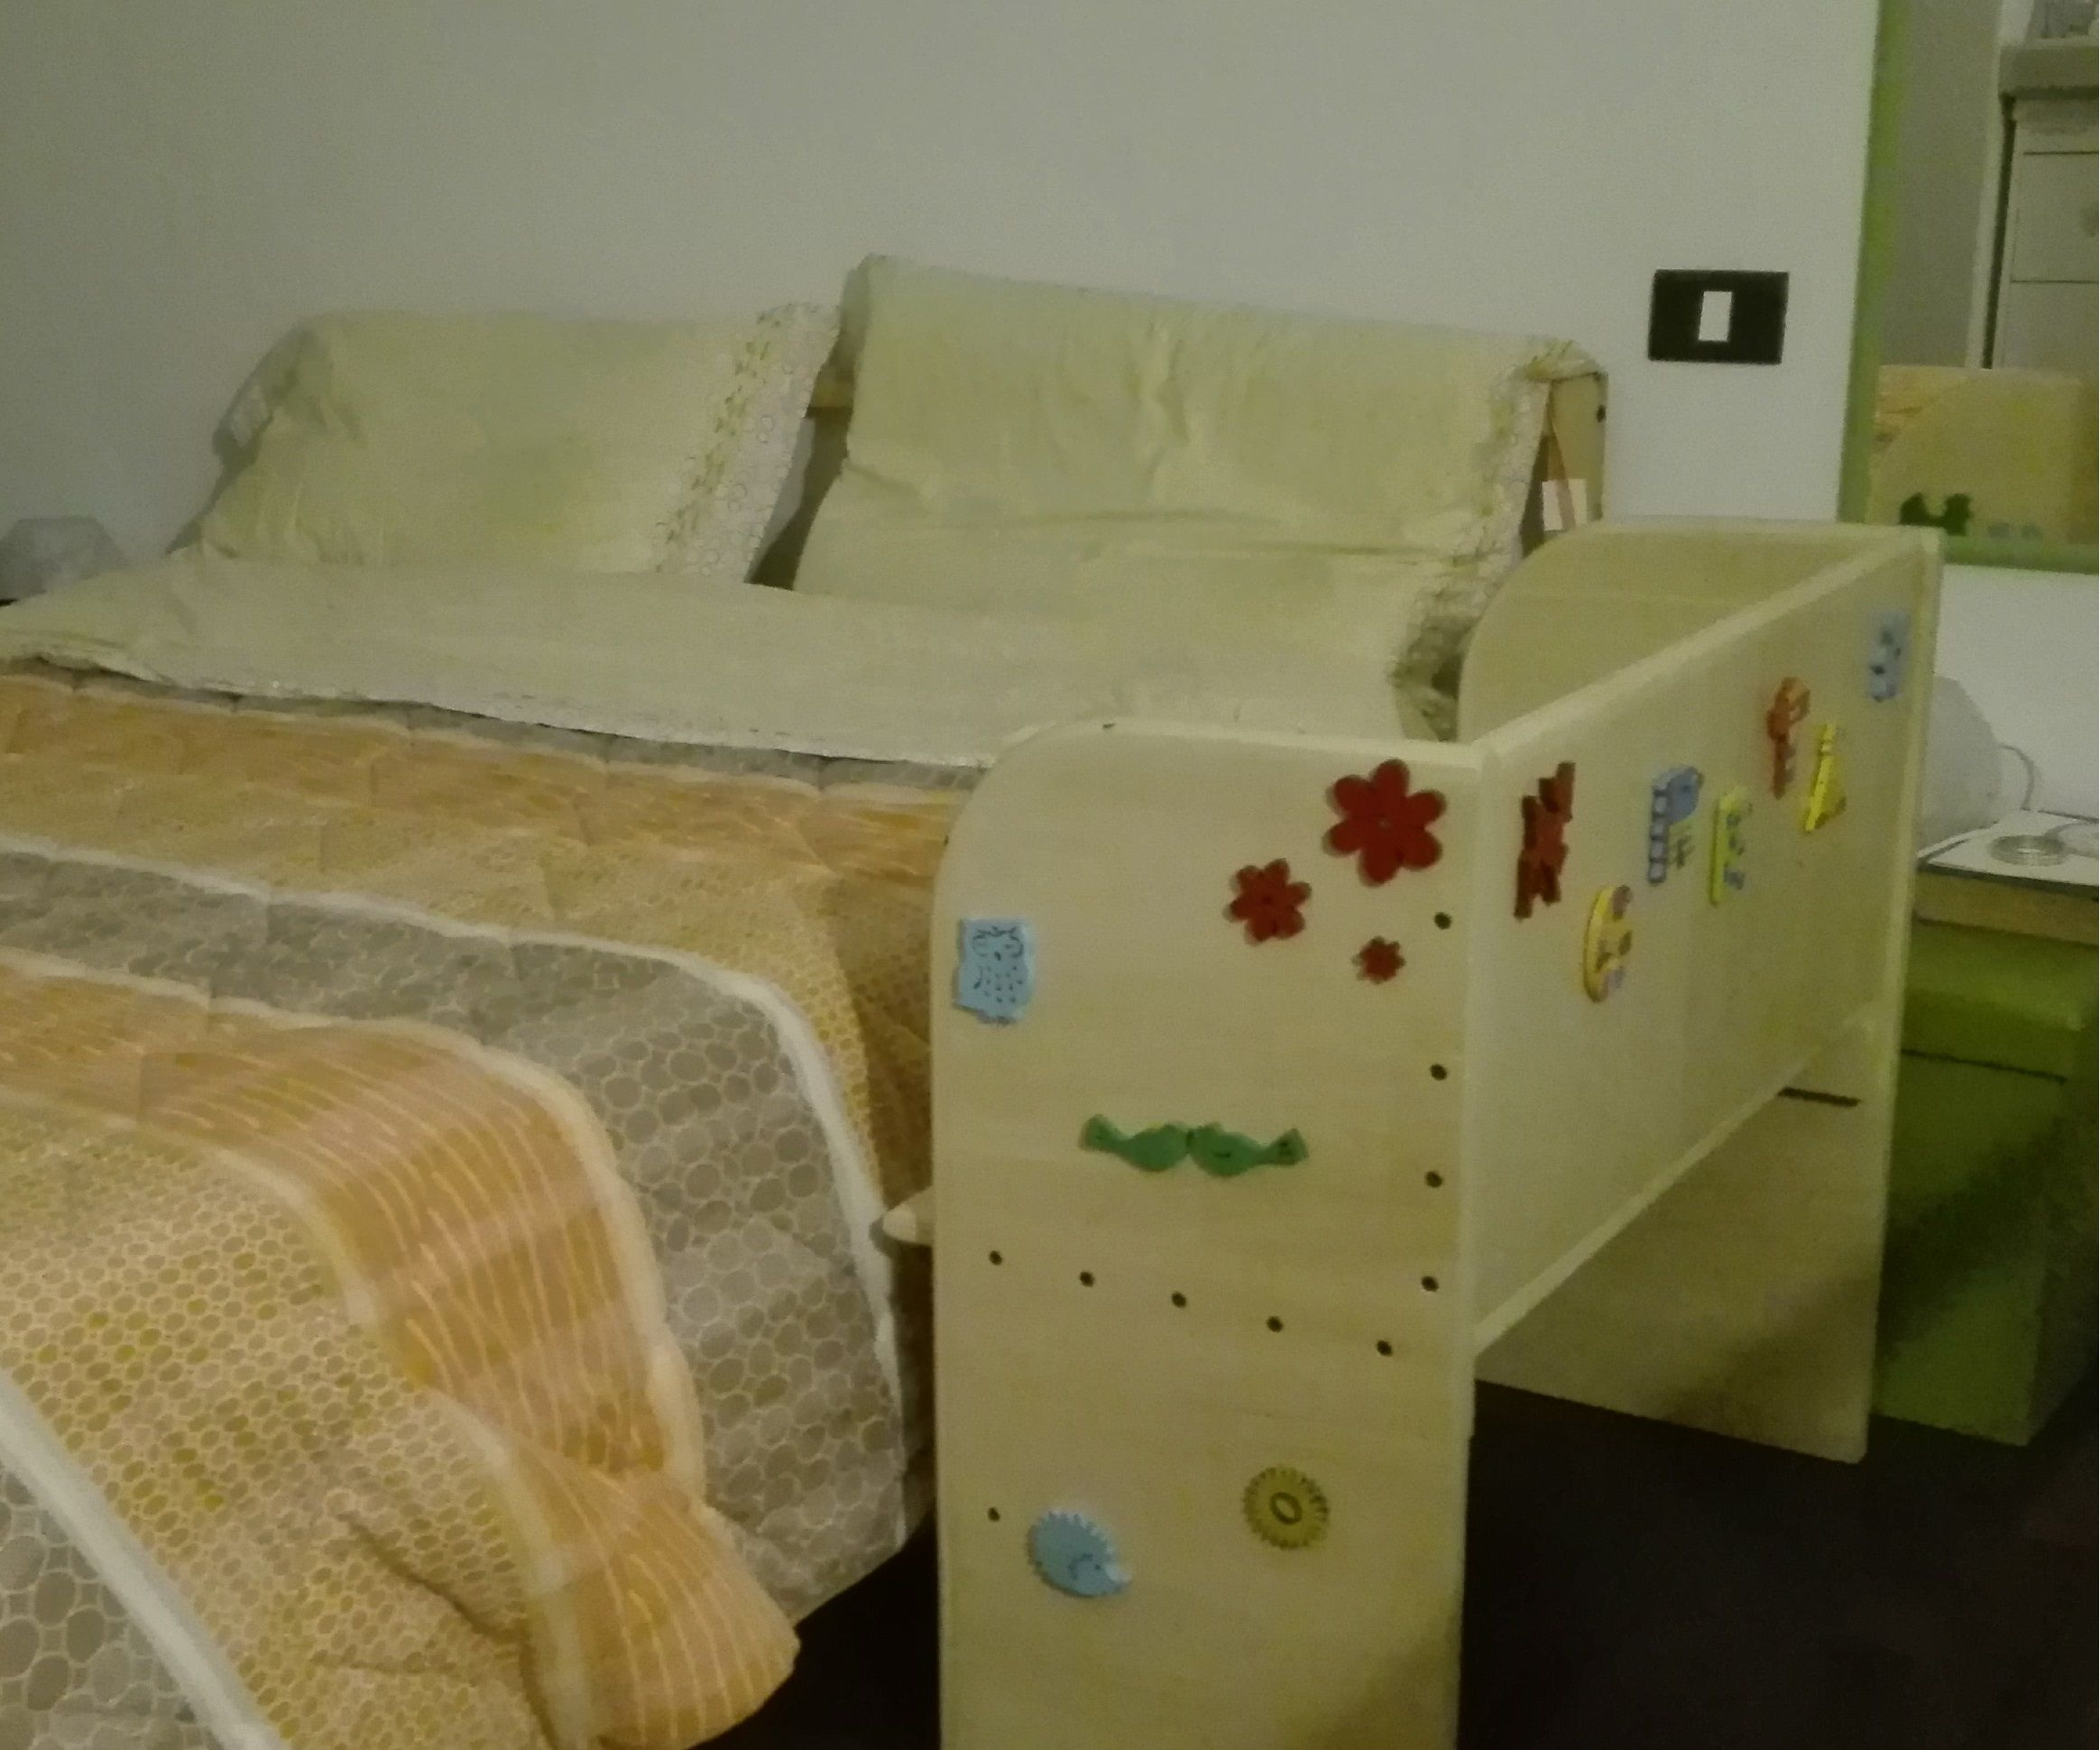 A robust side bed for our incoming daughter